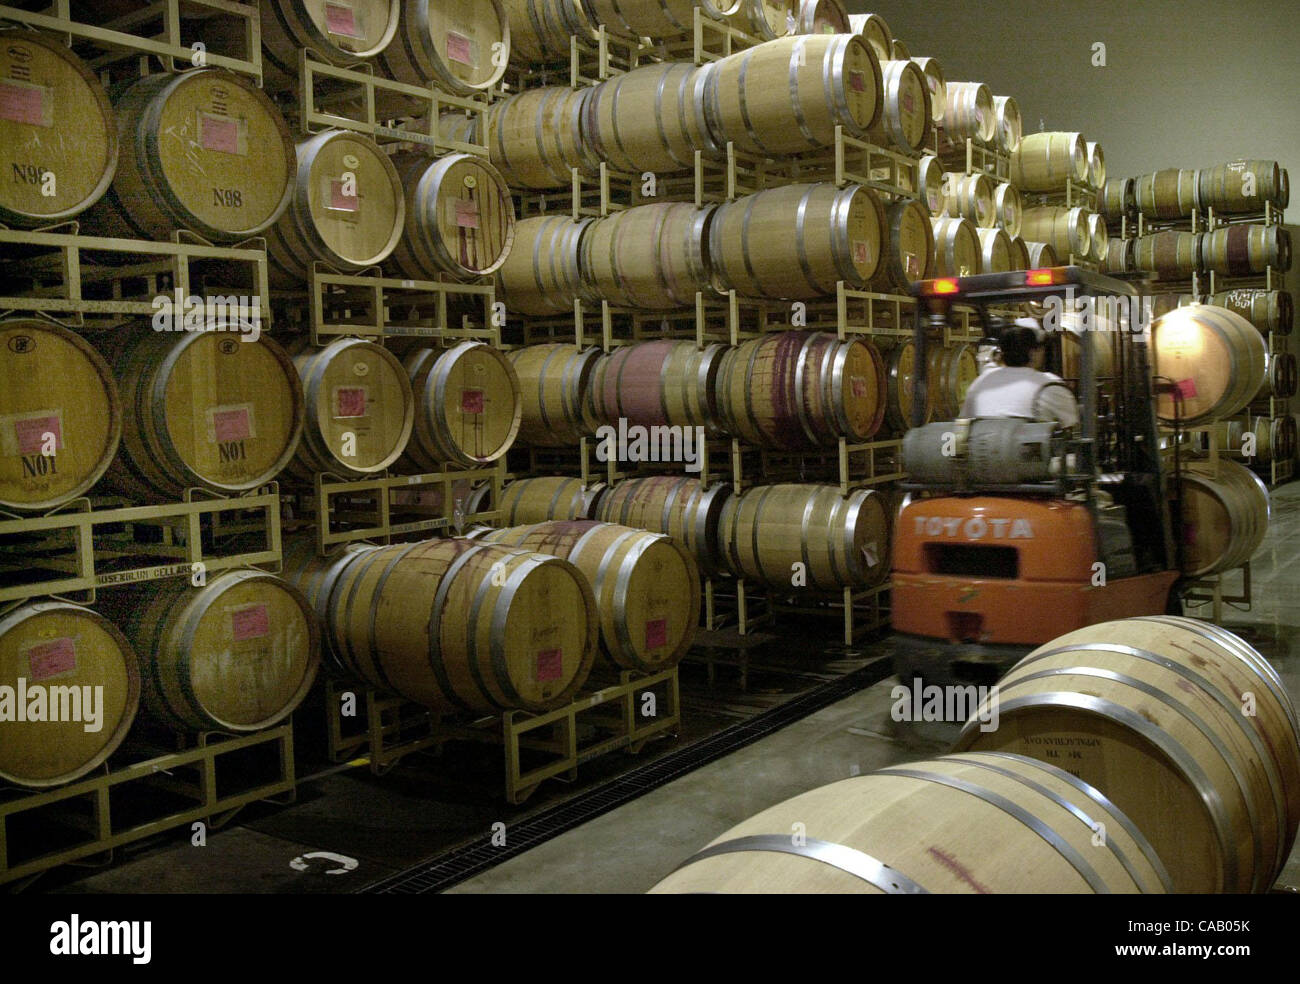 An employee moves barrels at Rosenblum Cellars in Alameda Calif. on Friday March 5 2004. The Alameda winery is talking with a Brentwood developer about ... & An employee moves barrels at Rosenblum Cellars in Alameda Calif. on ...